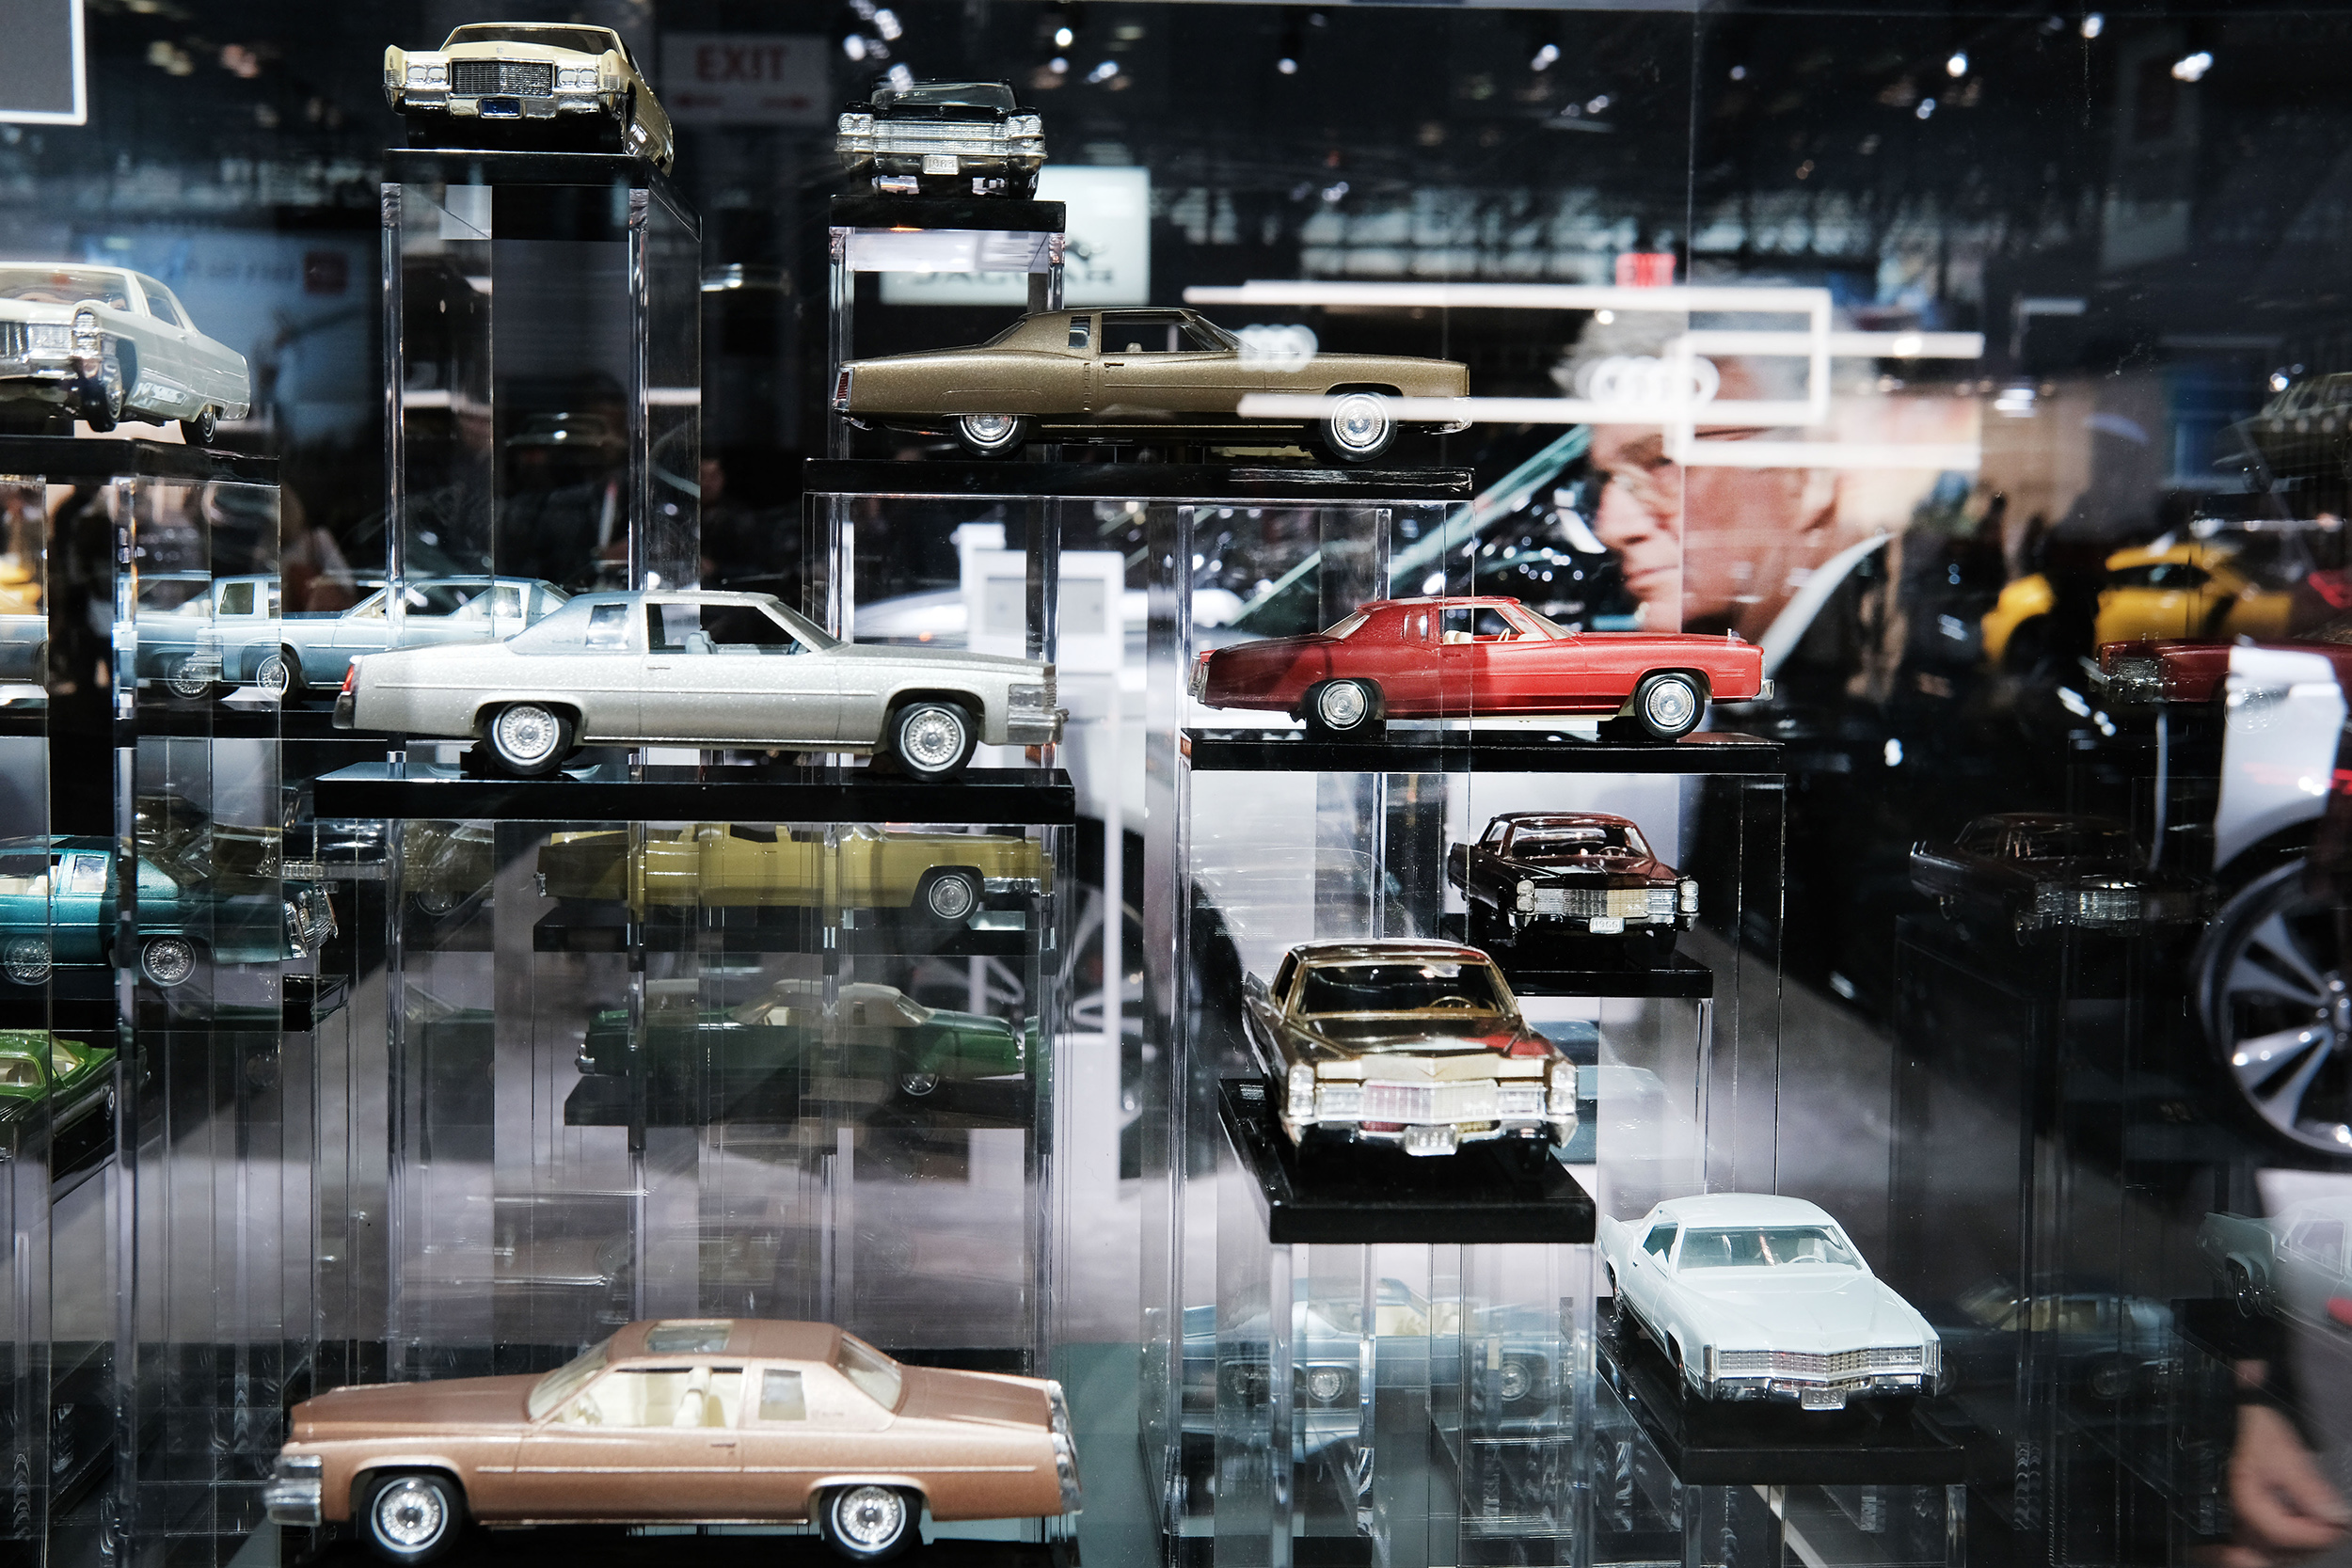 Delta variant closes N.Y. auto show, leads Detroit Three to reinstate mask mandates